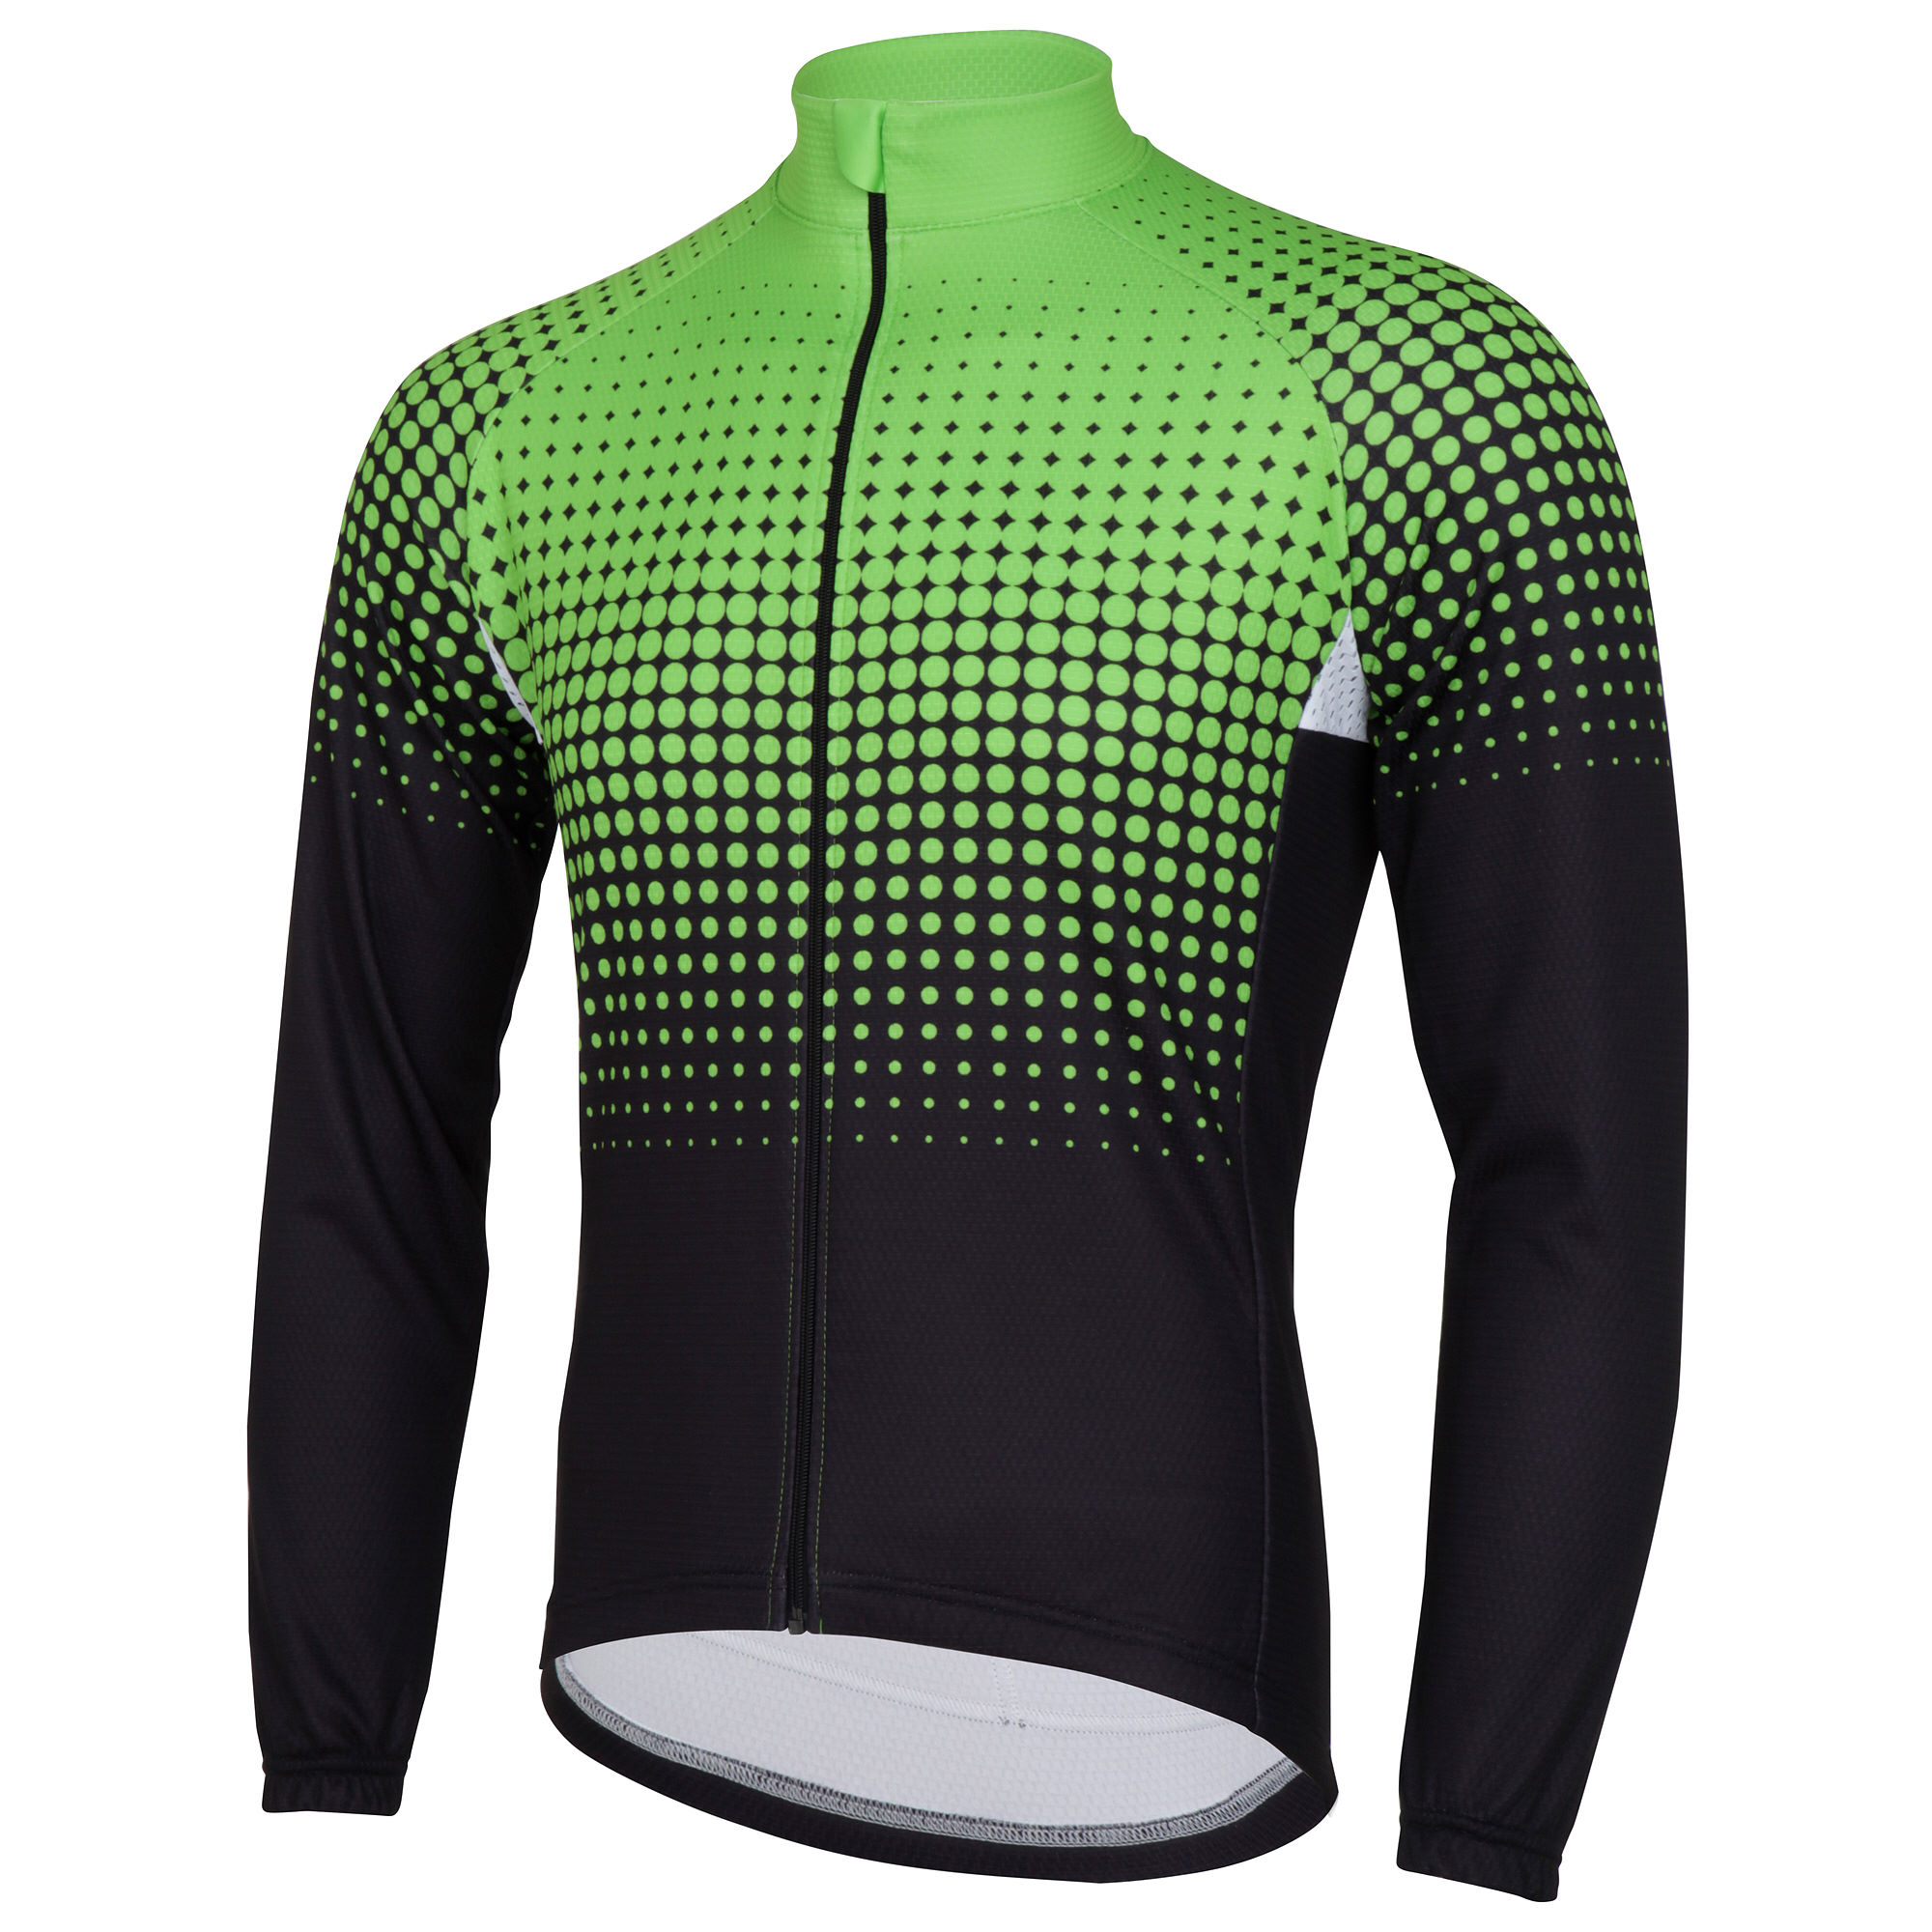 3cd06f0ab Thermal comfort created to combat the cold. The stolen goat Bodyline long  sleeve thermal jersey ...